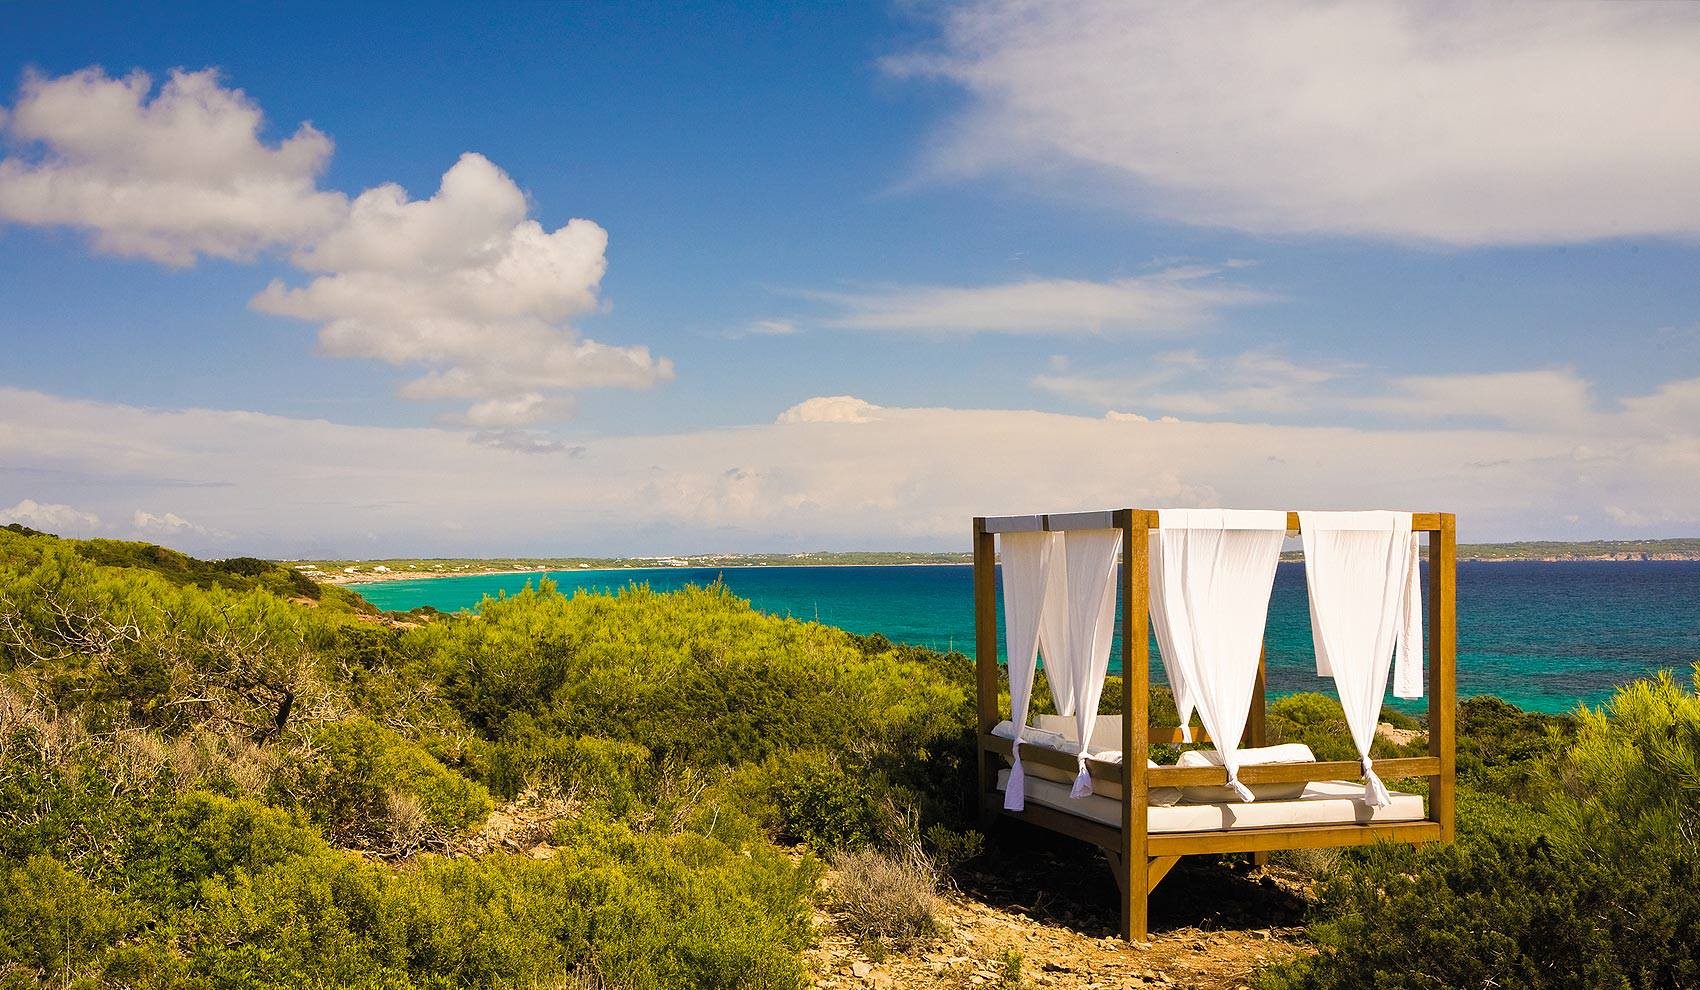 Formentera. 5 chic hotels ...and one could be your wedding venue ...